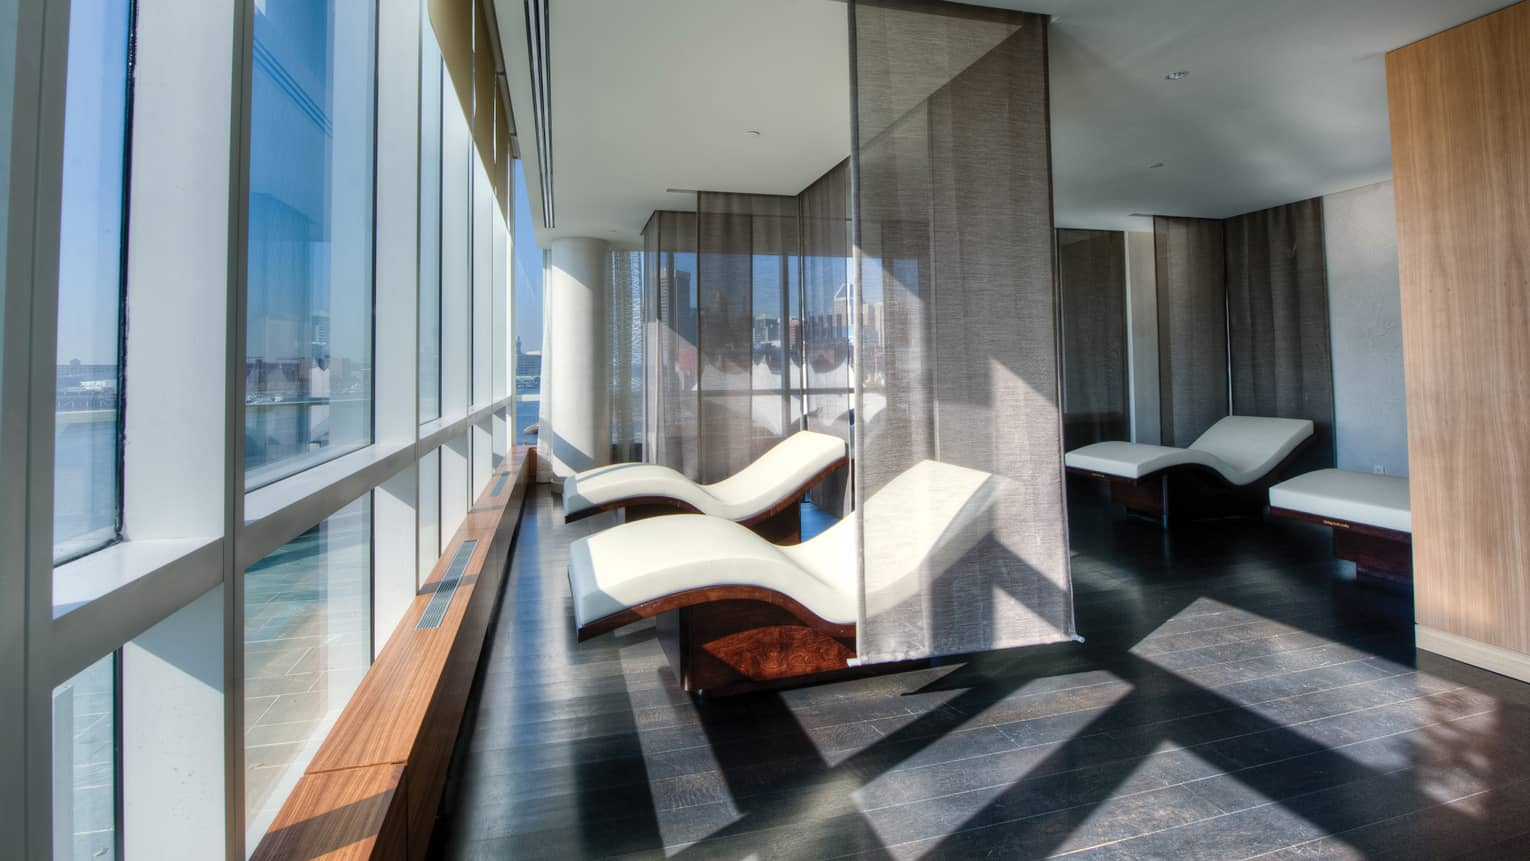 Two curved white spa chairs divided by sheer panel curtains in front of floor-to-ceiling windows